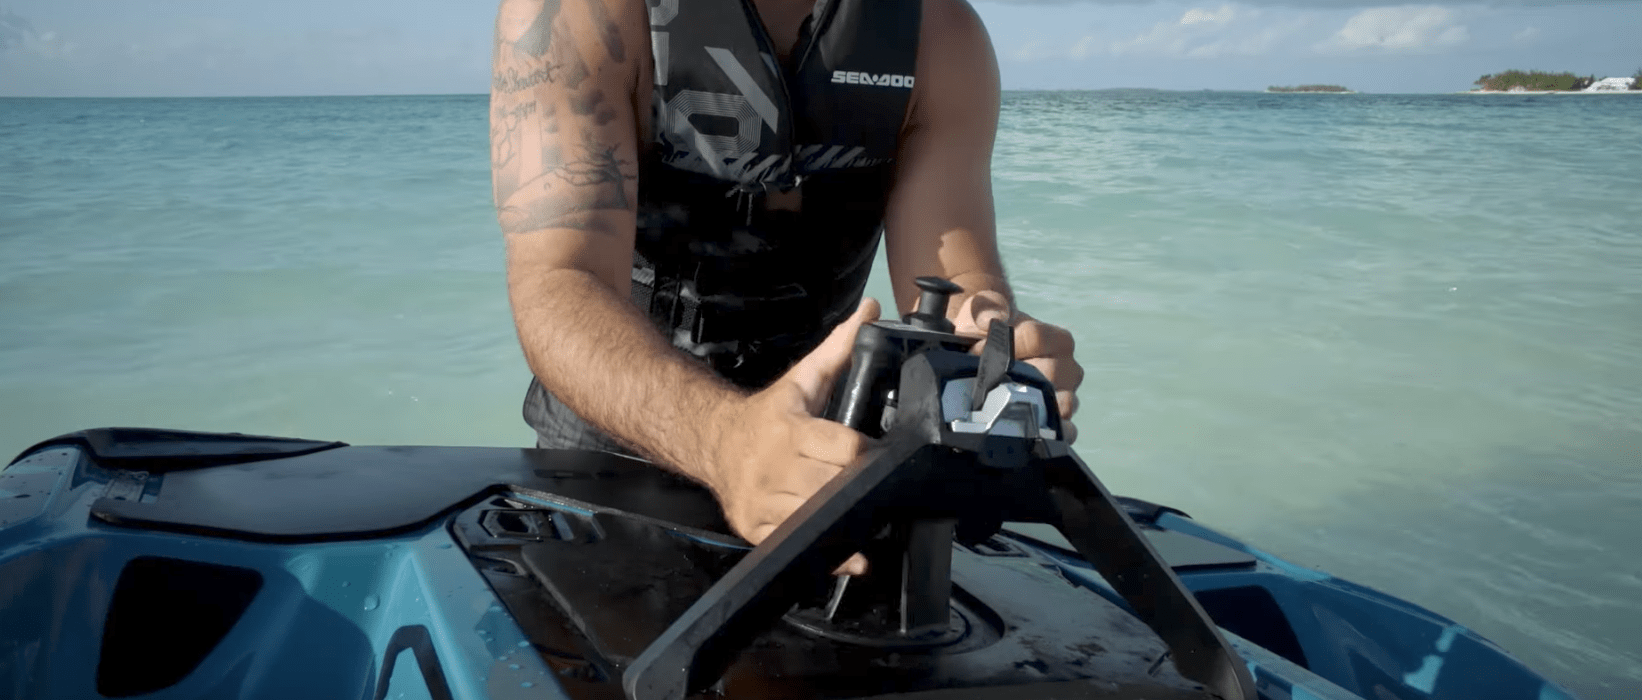 2018 Sea-Doo First Impressions - The Good, Bad, and Ugly - Steven in